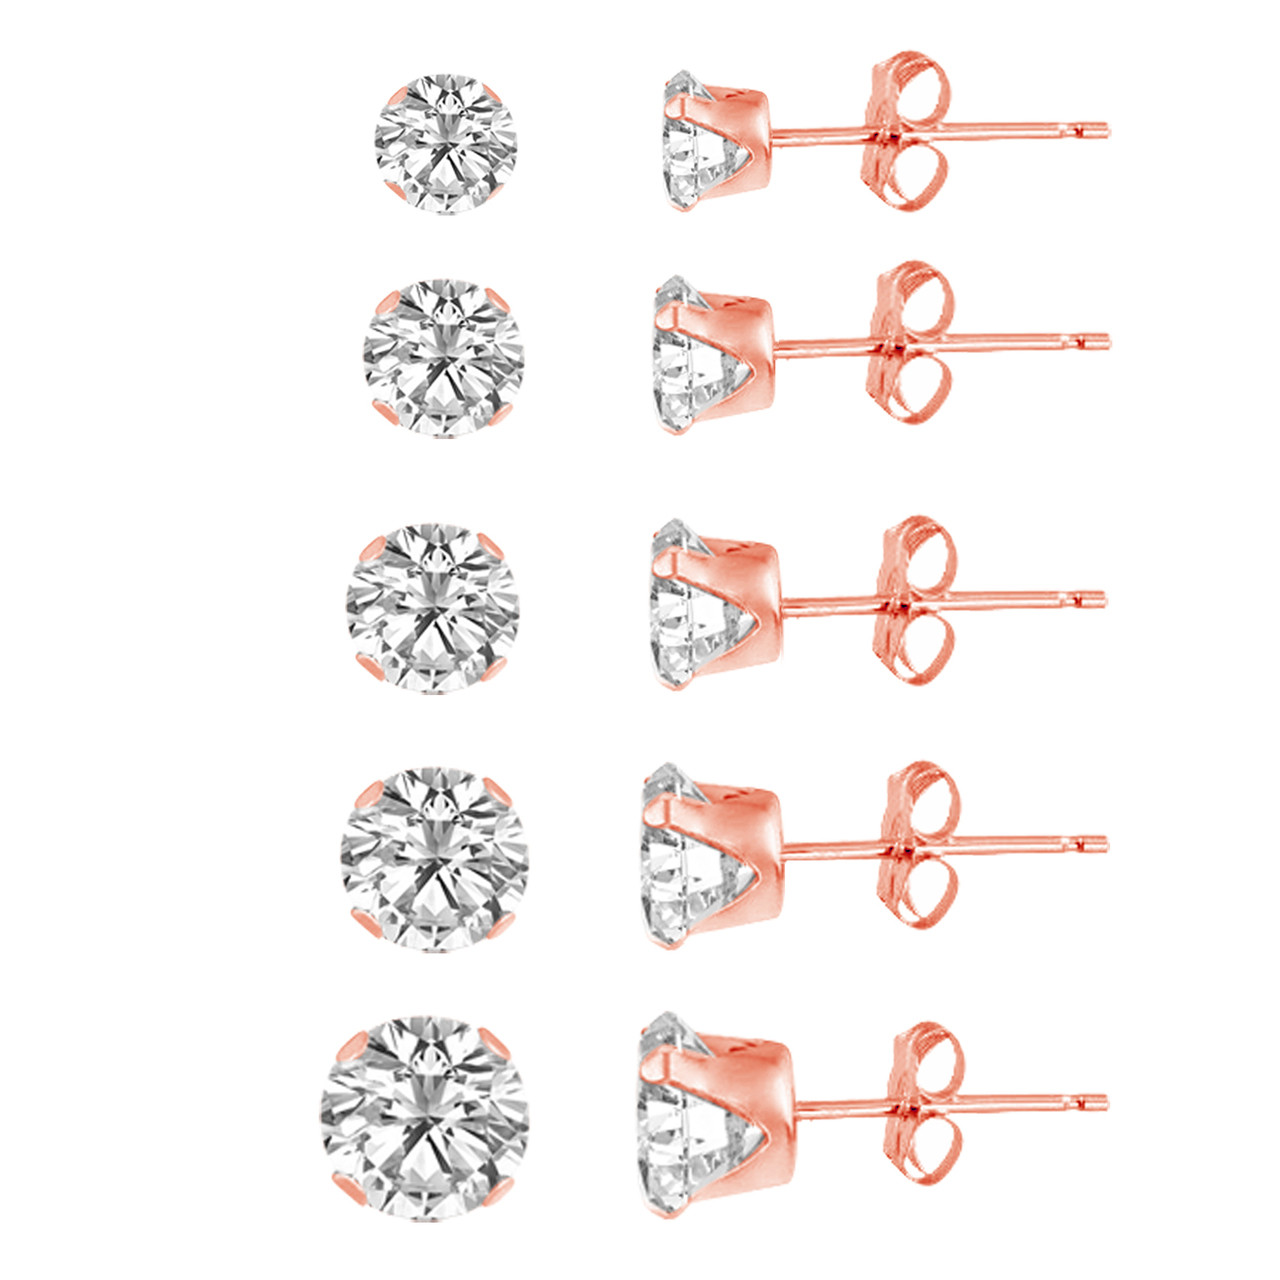 Prong Set Round Clear Cubic Zirconia Stud Earrings Rhodium Plated Sterling Silver 7MM